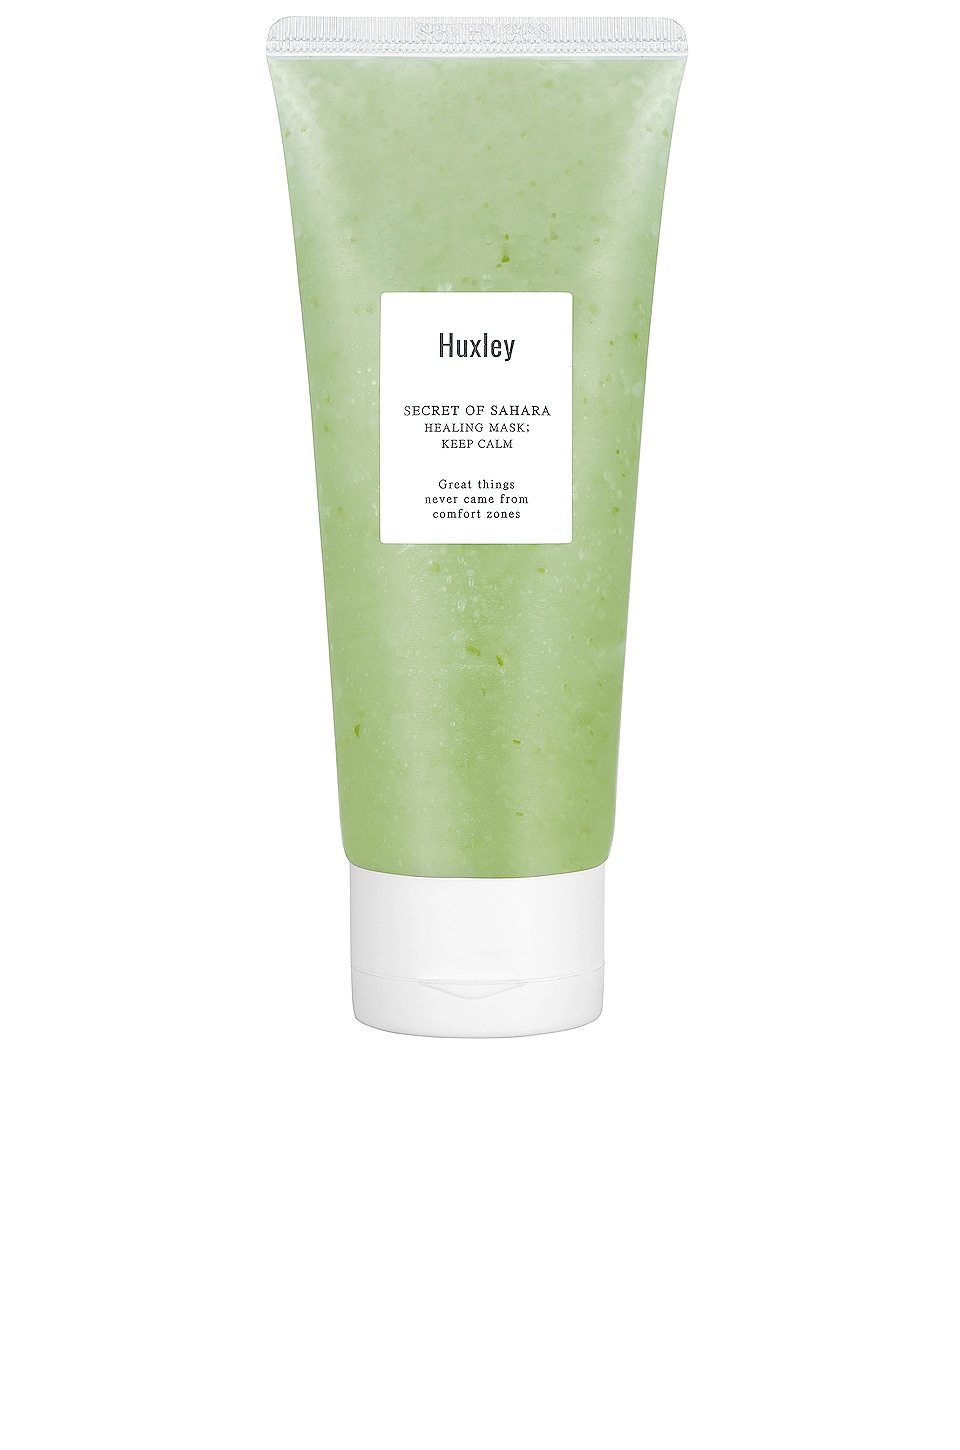 Huxley MASQUE VISAGE KEEP CALM